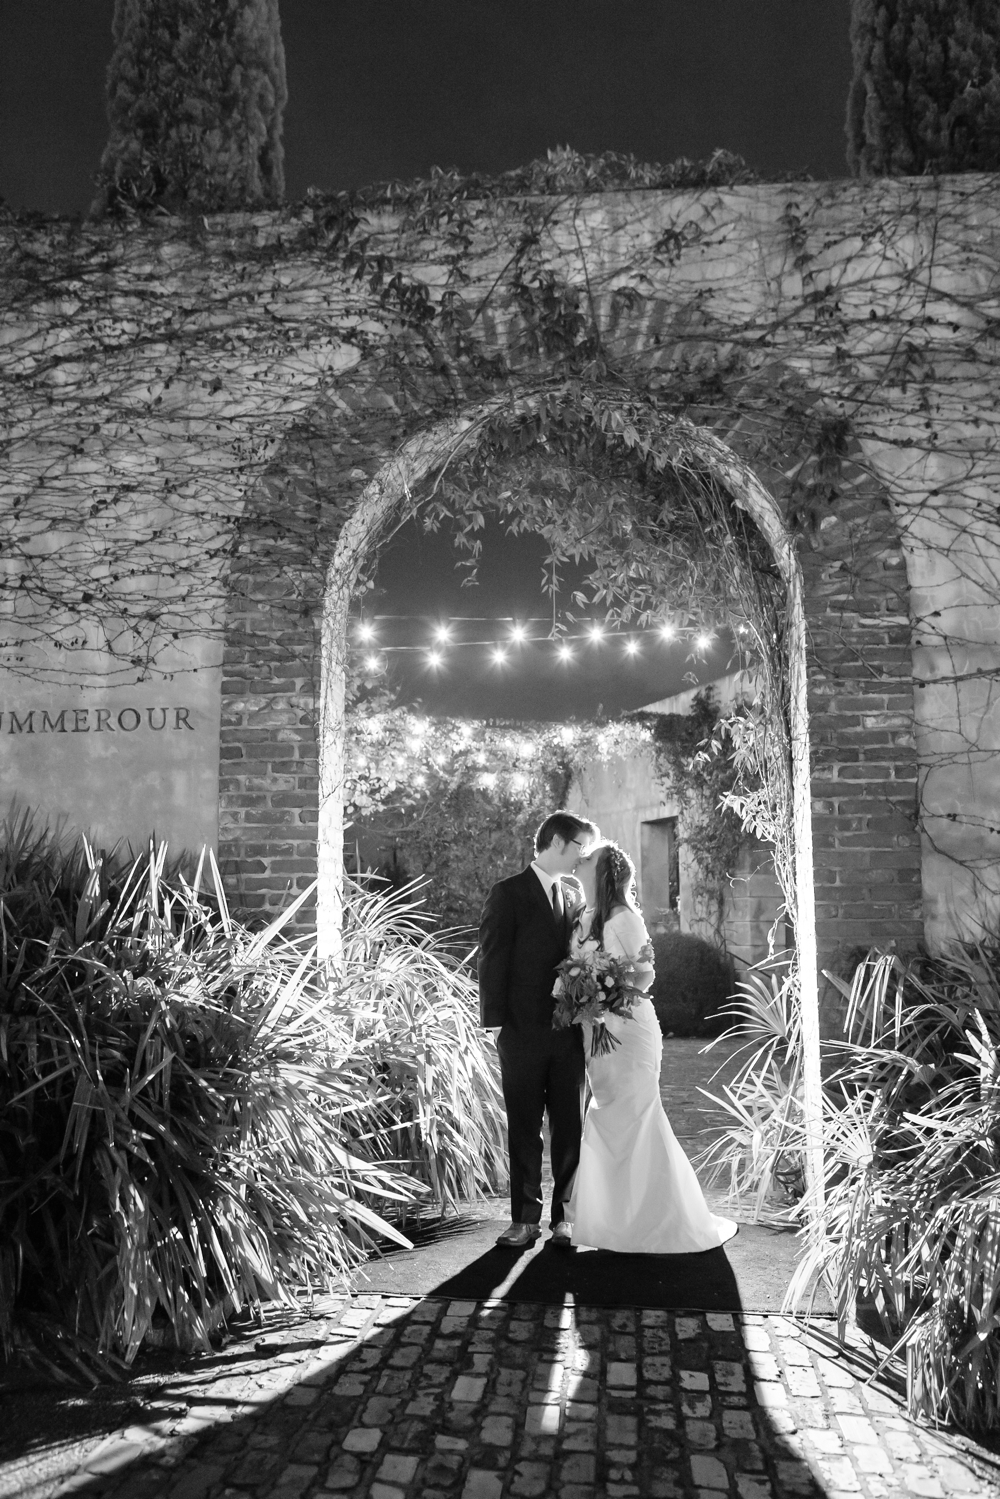 Summerour-Wedding-Photos029